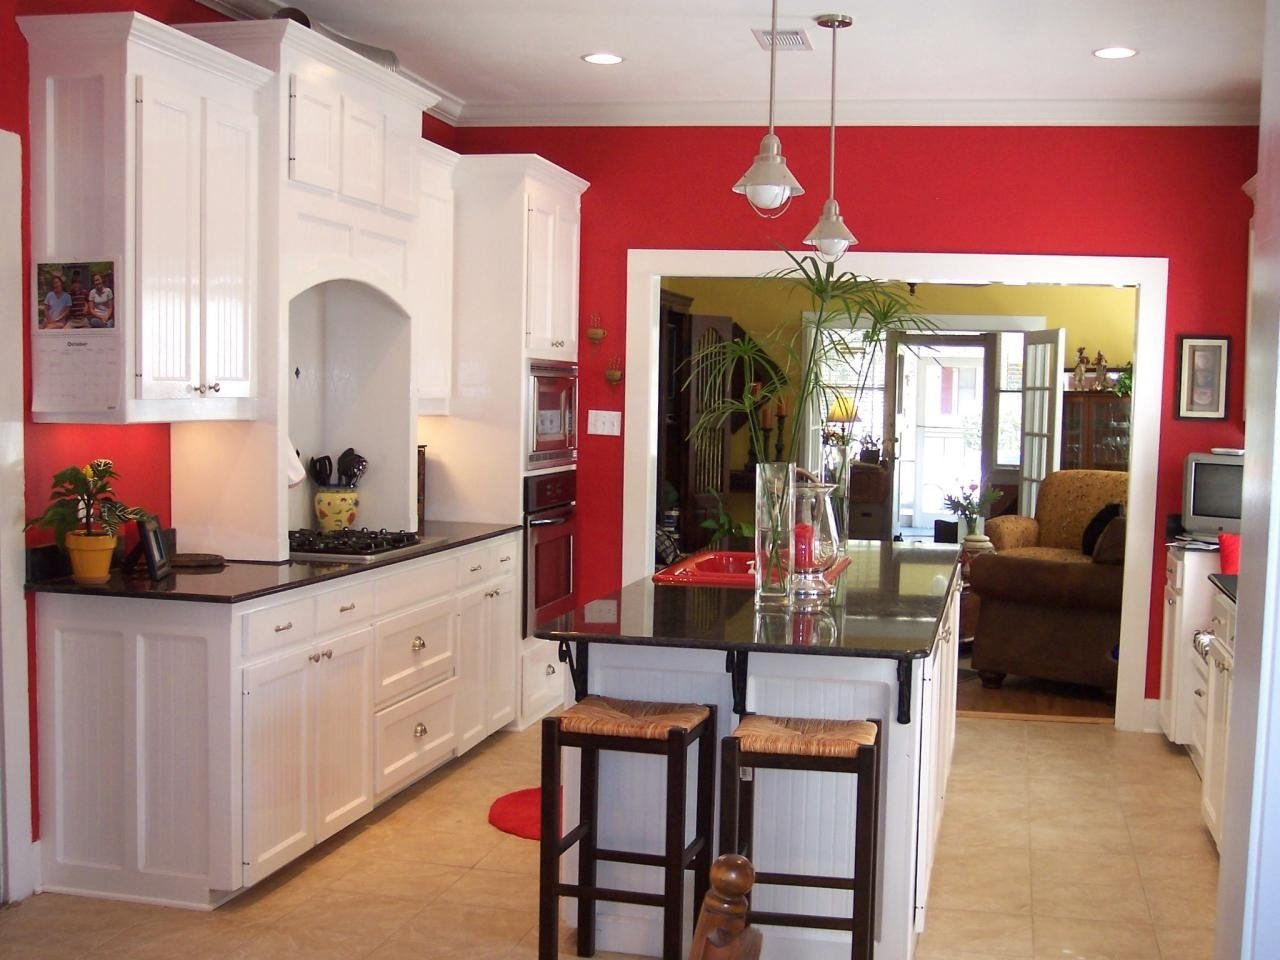 10 Pretty Kitchen Paint Ideas With White Cabinets best color for kitchen walls with white cabinets kitchen and decor 2020